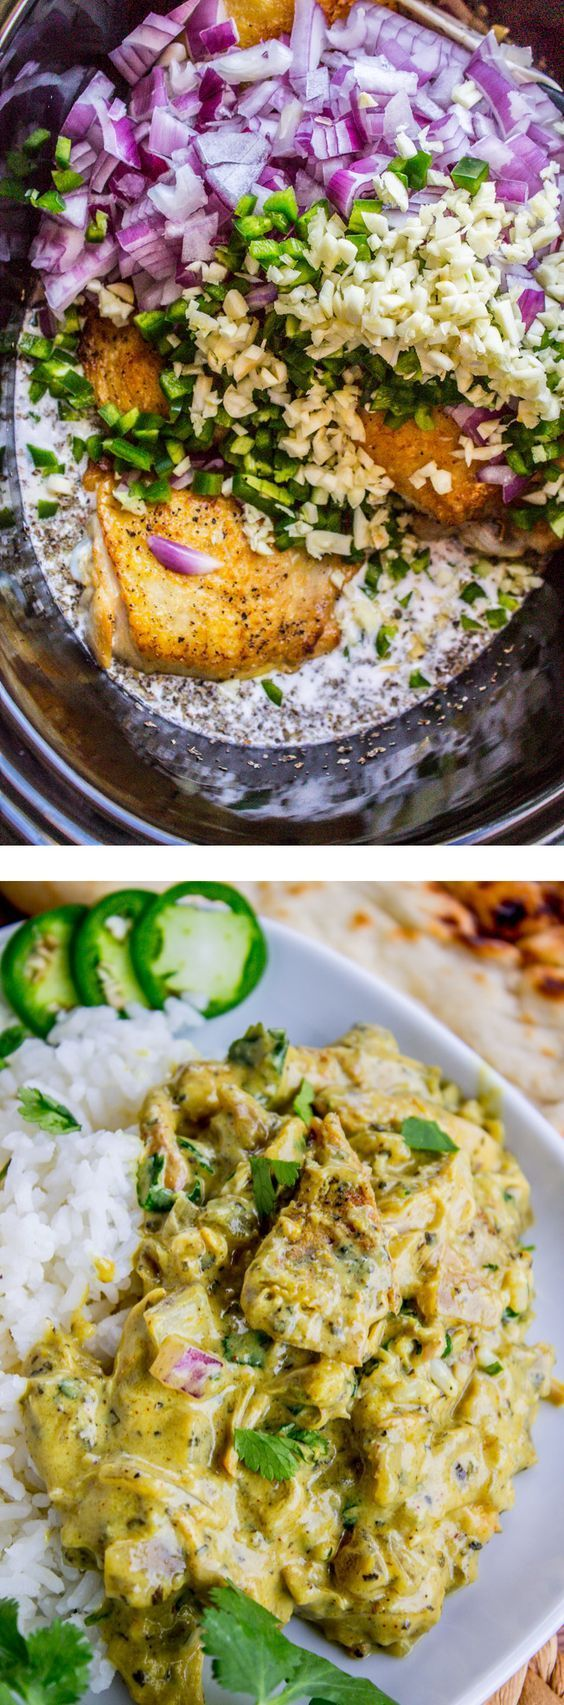 Whole30 Slow Cooker Basil Chicken in Coconut Curry Sauce Recipe